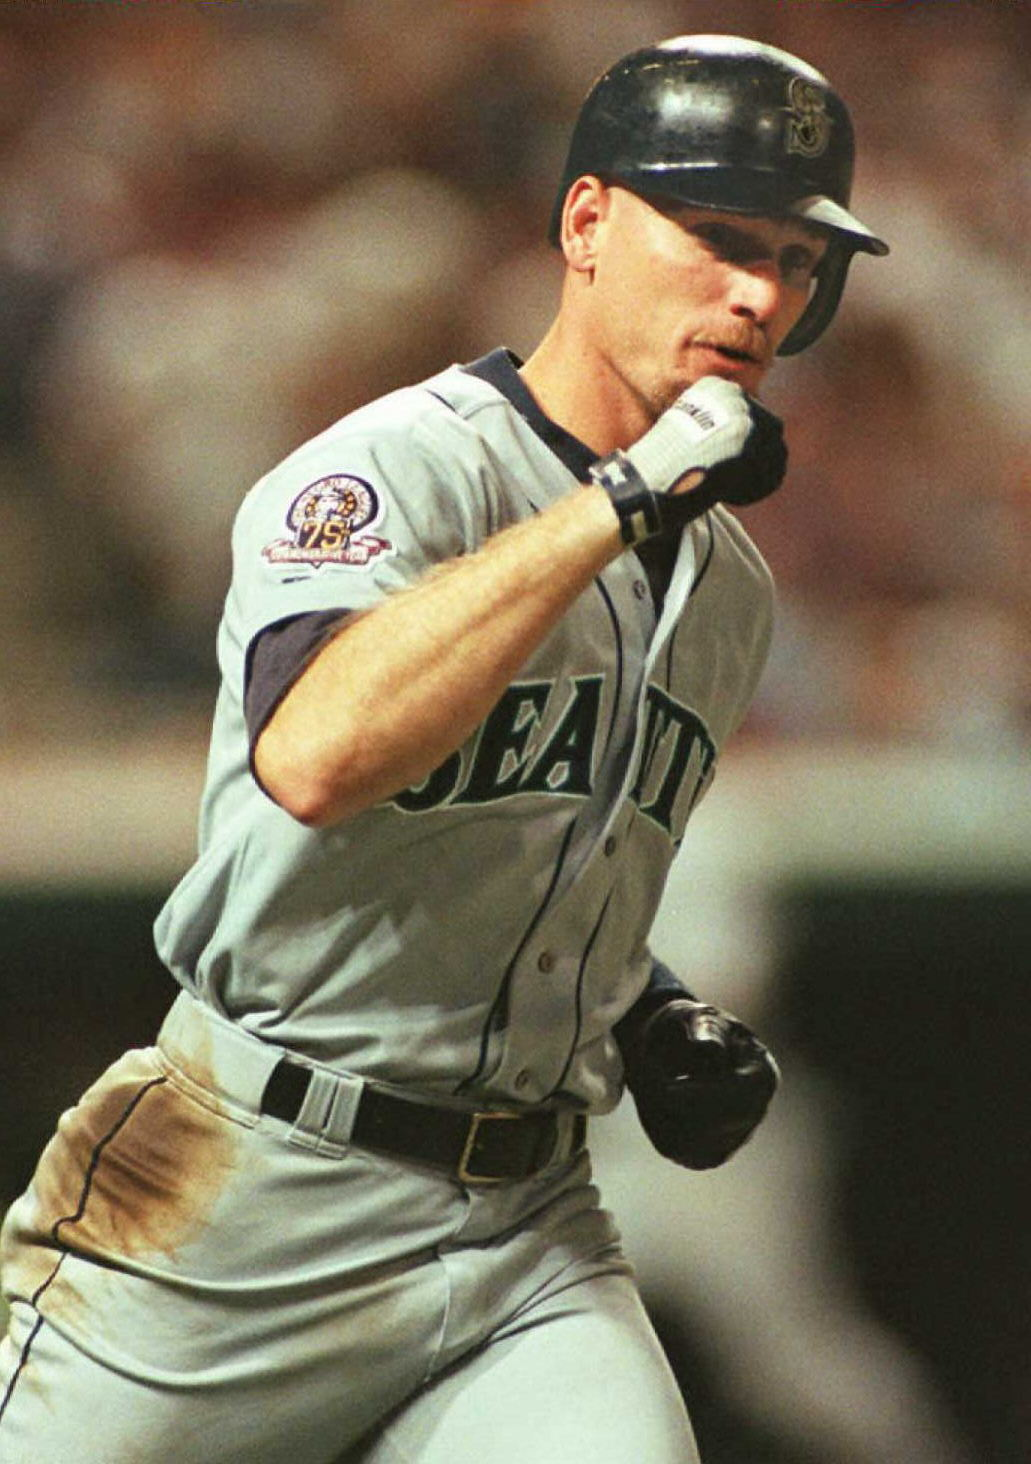 Seattle Mariners Jay Buhner pumps his fist as he r